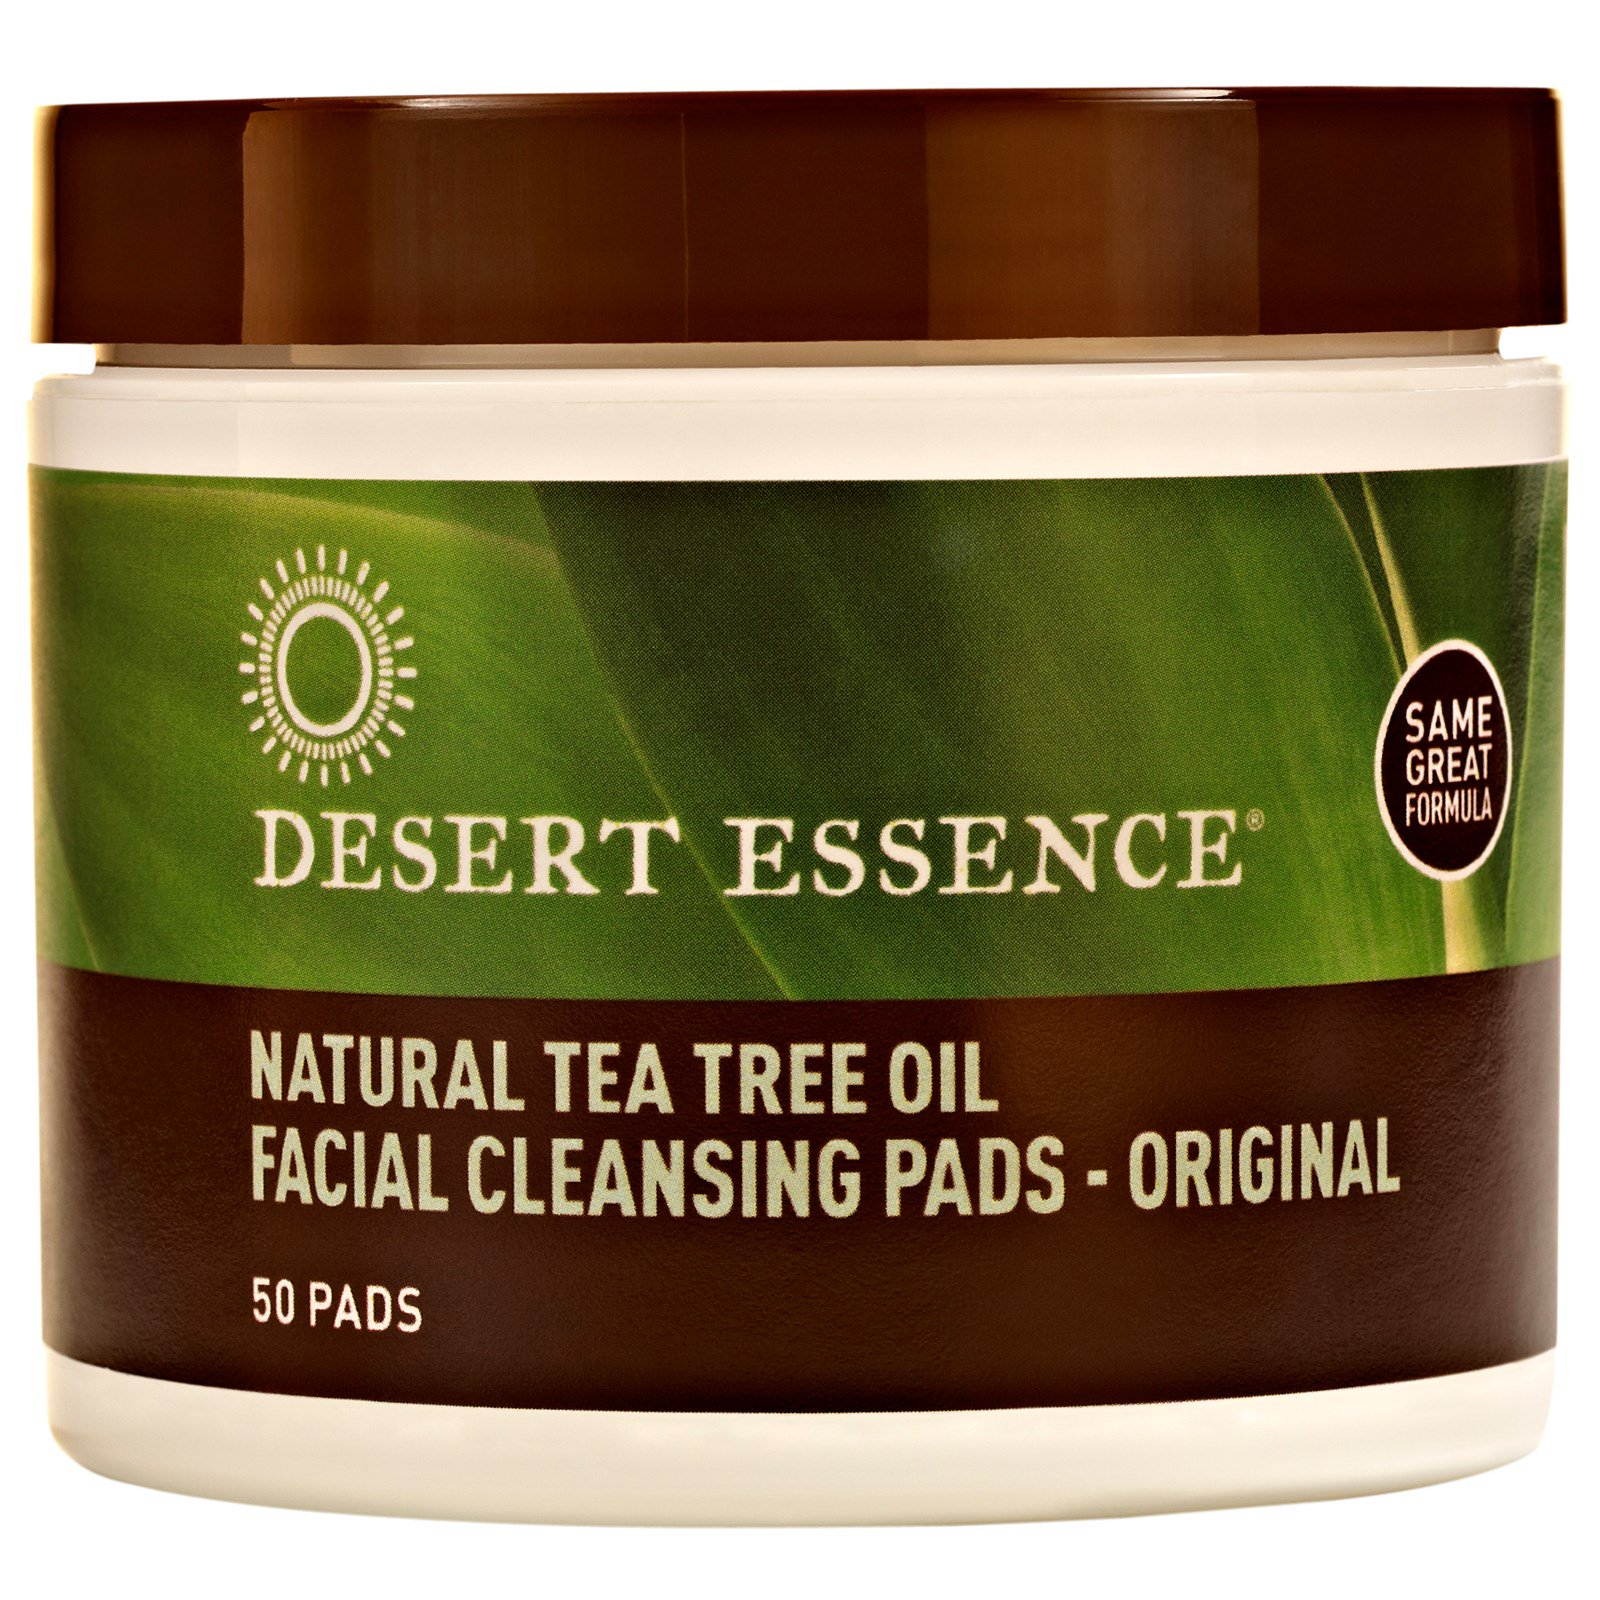 Desert Essence, Natural Tea Tree Oil Facial Cleansing Pad...